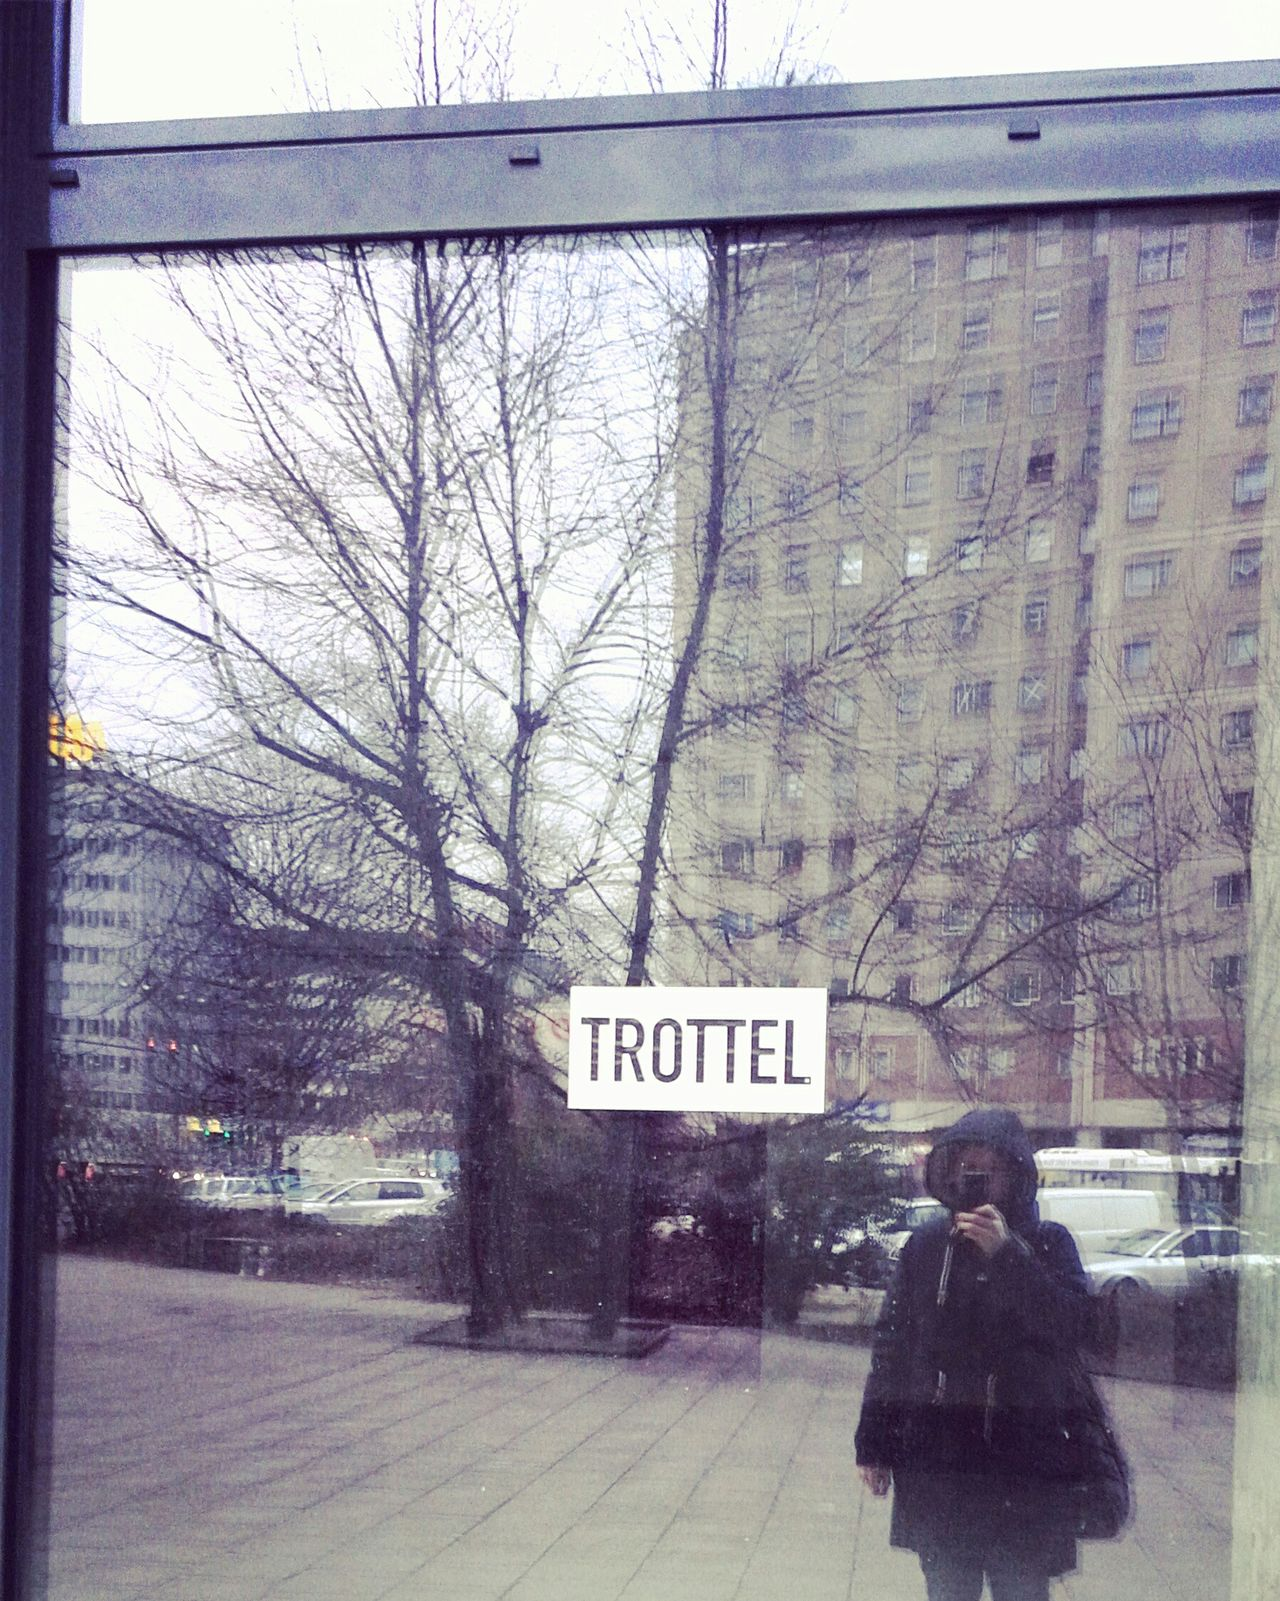 Trottel Fool  Idiot Hugging A Tree Signs Reflection Urban Nature Plattenbau Streetphotography Streetart Wohnglück Berliner Ansichten Urban That's Me Enjoying Life Hello World People Watching Cheese! Love Is In The Air Myfuckingberlin Buildings & Sky Haltstoppichmusserstmalnfotodavonmachen Reflections Window Window Shopping